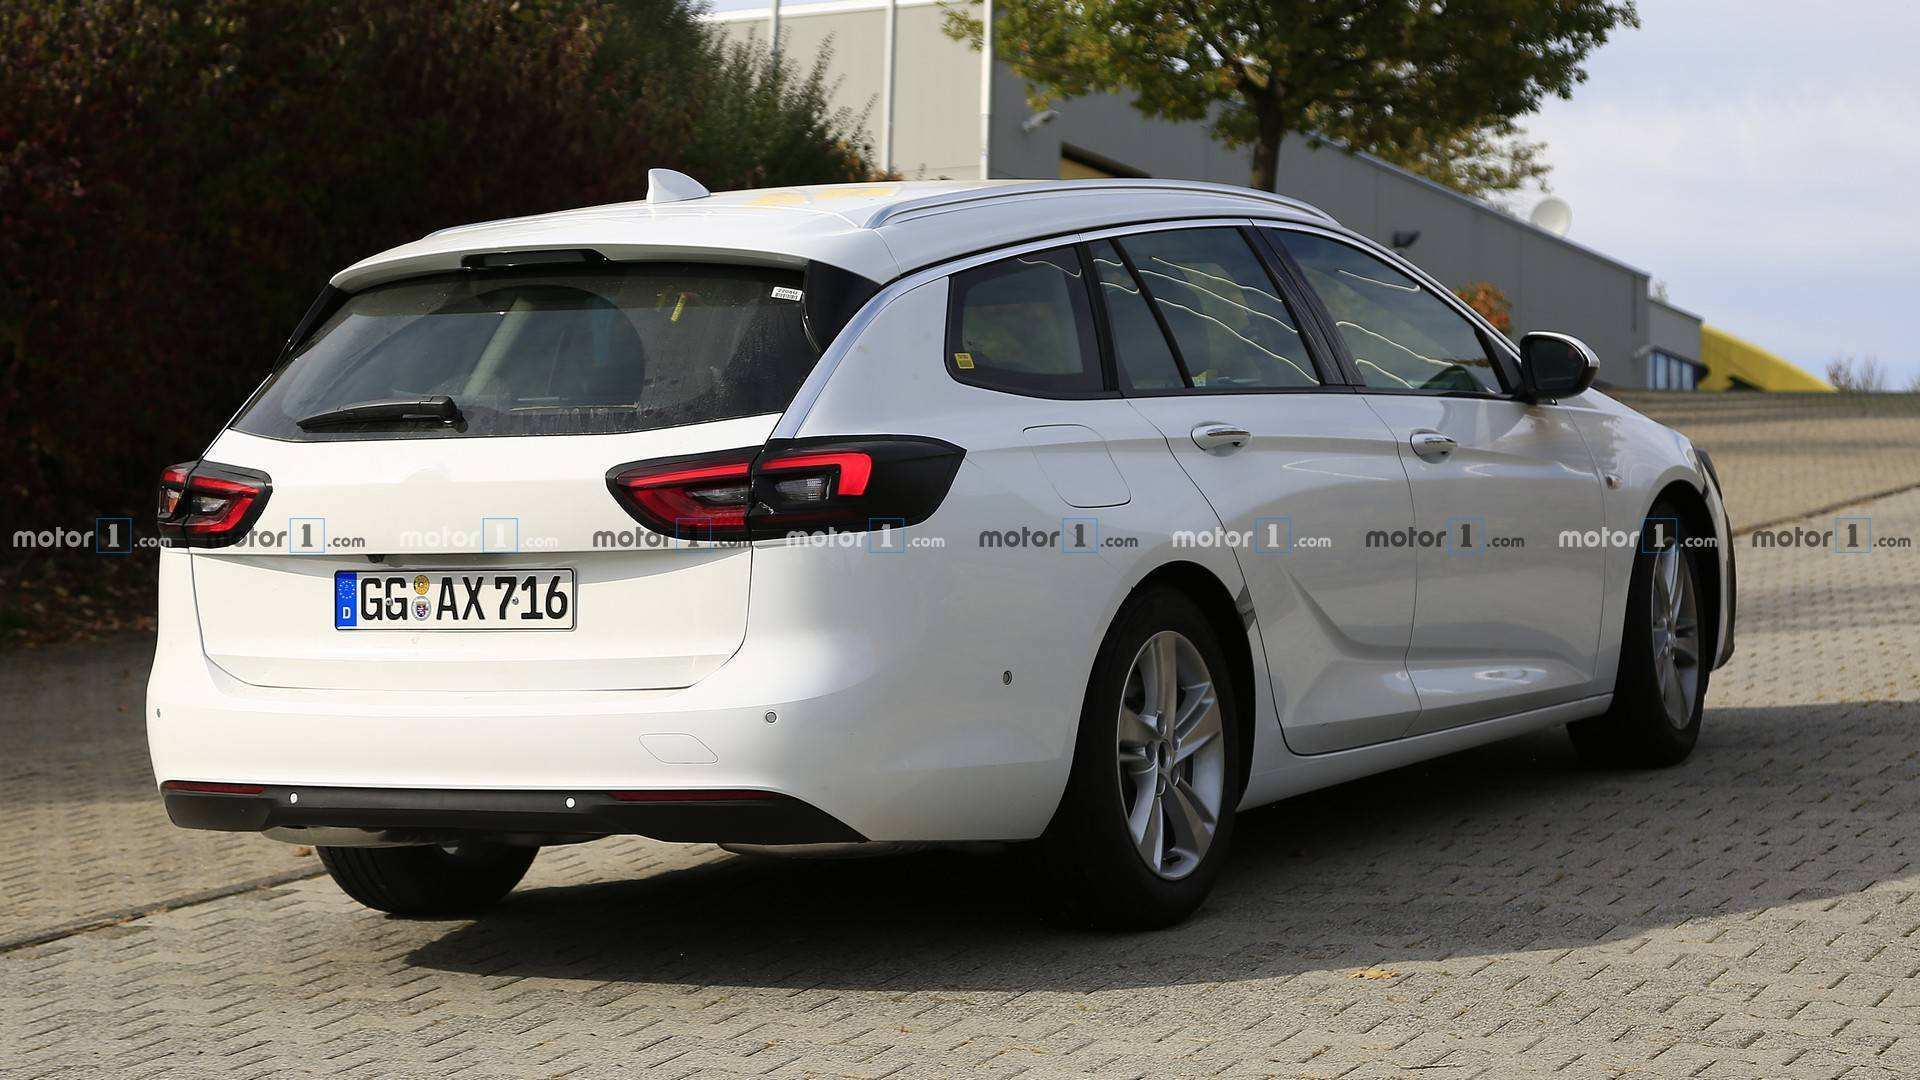 48 The Best Yeni Opel Insignia 2020 Pictures